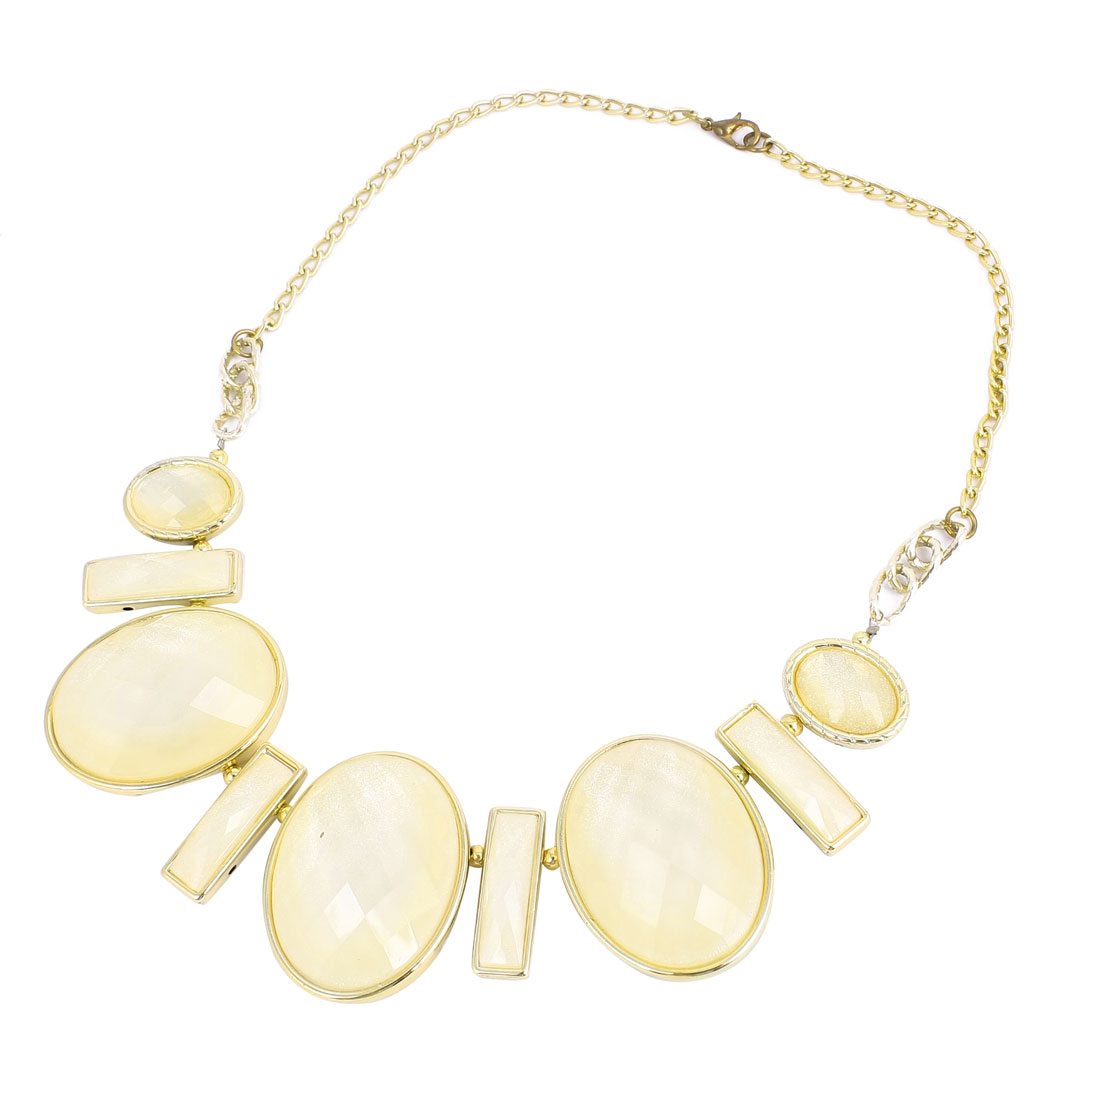 White Oval Shaped Faux Crystal Decor Bib Necklace for Ladies Woman